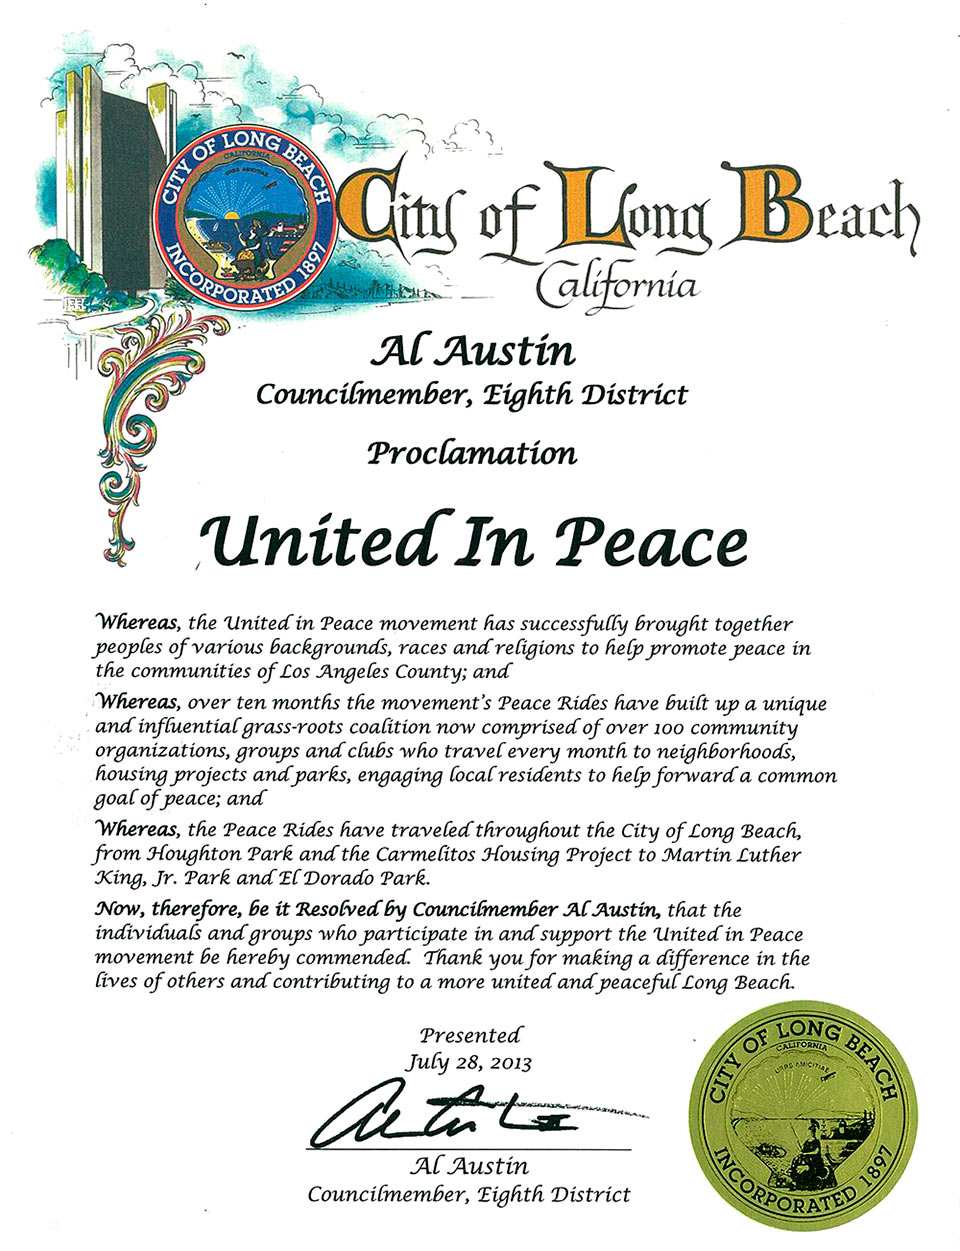 Al-Austin-Long-Beach-Councilmember.jpg